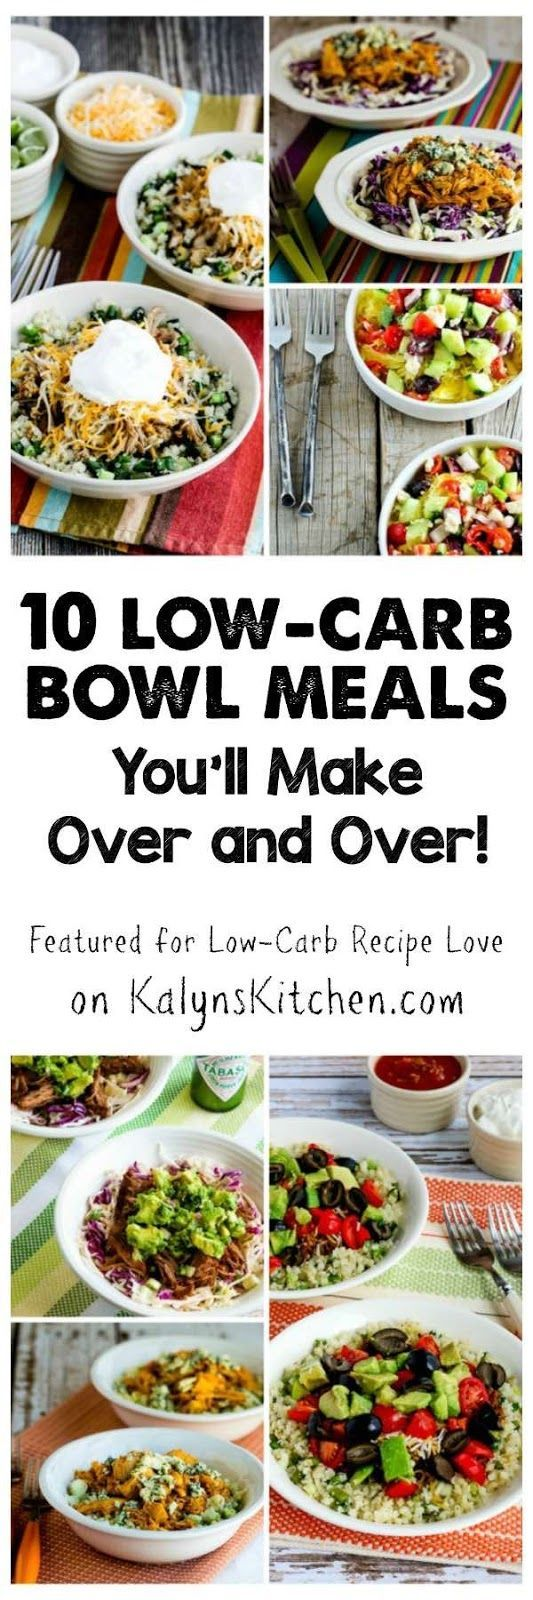 I love meals-in-a-bowl with a base of cabbage slaw, spaghetti squash, or cauliflower rice, and here are my favorite 10 Low-Carb Bowl Meals You'll Make Over and Over! [featured for Low-Carb Recipe Love on KalynsKitchen.com]